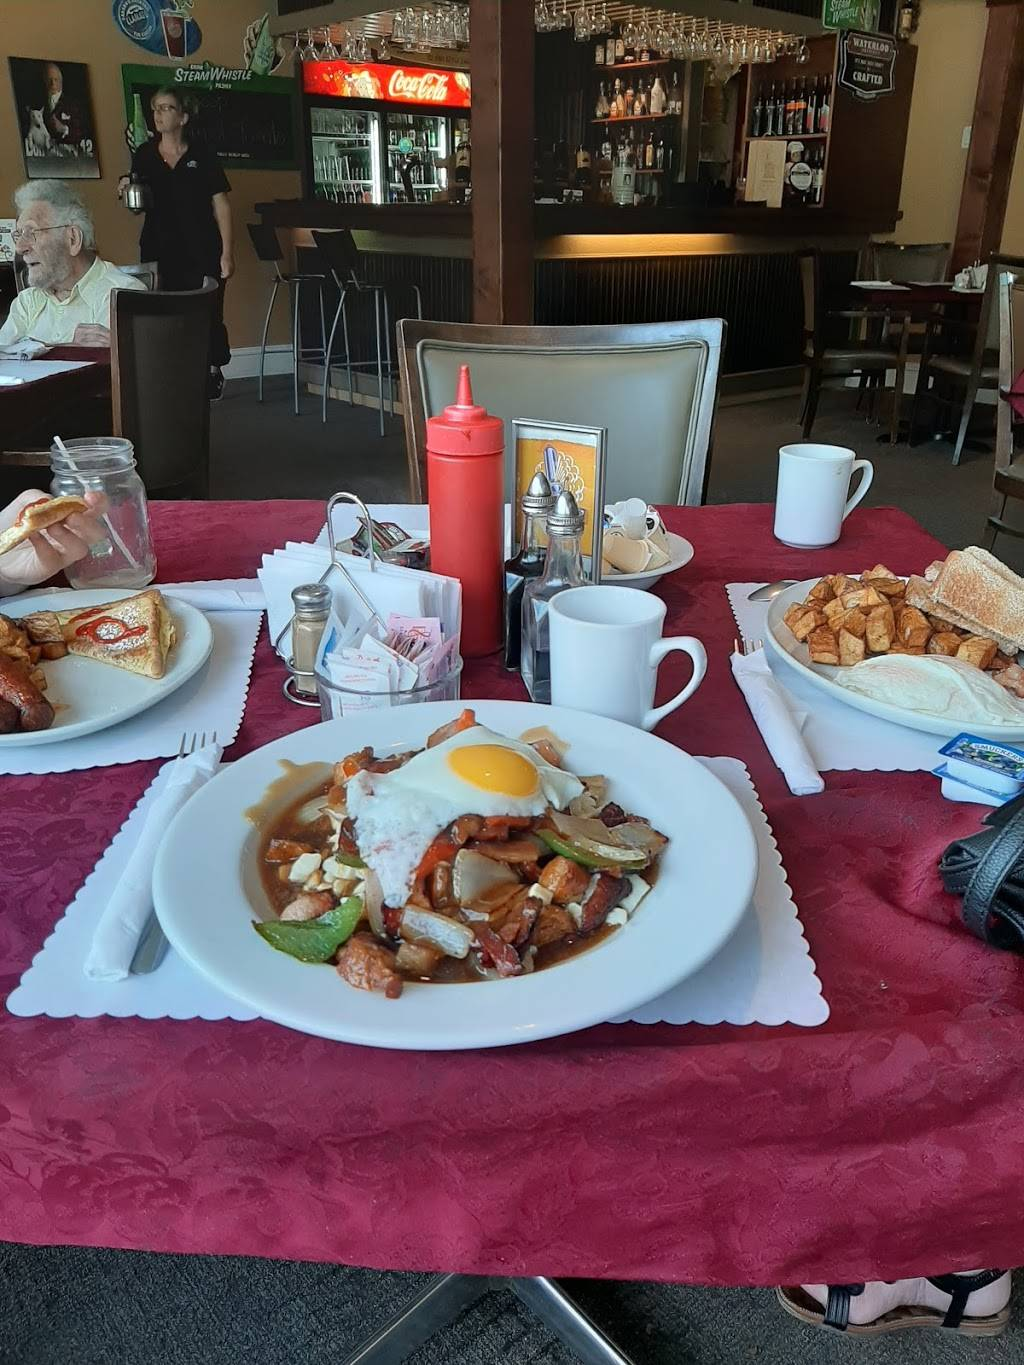 Cedar Valley Golf & Country Club & The Clubhouse Cafe | restaurant | 7041 County Rd 29, Brockville, ON K6V 5T4, Canada | 6133422158 OR +1 613-342-2158